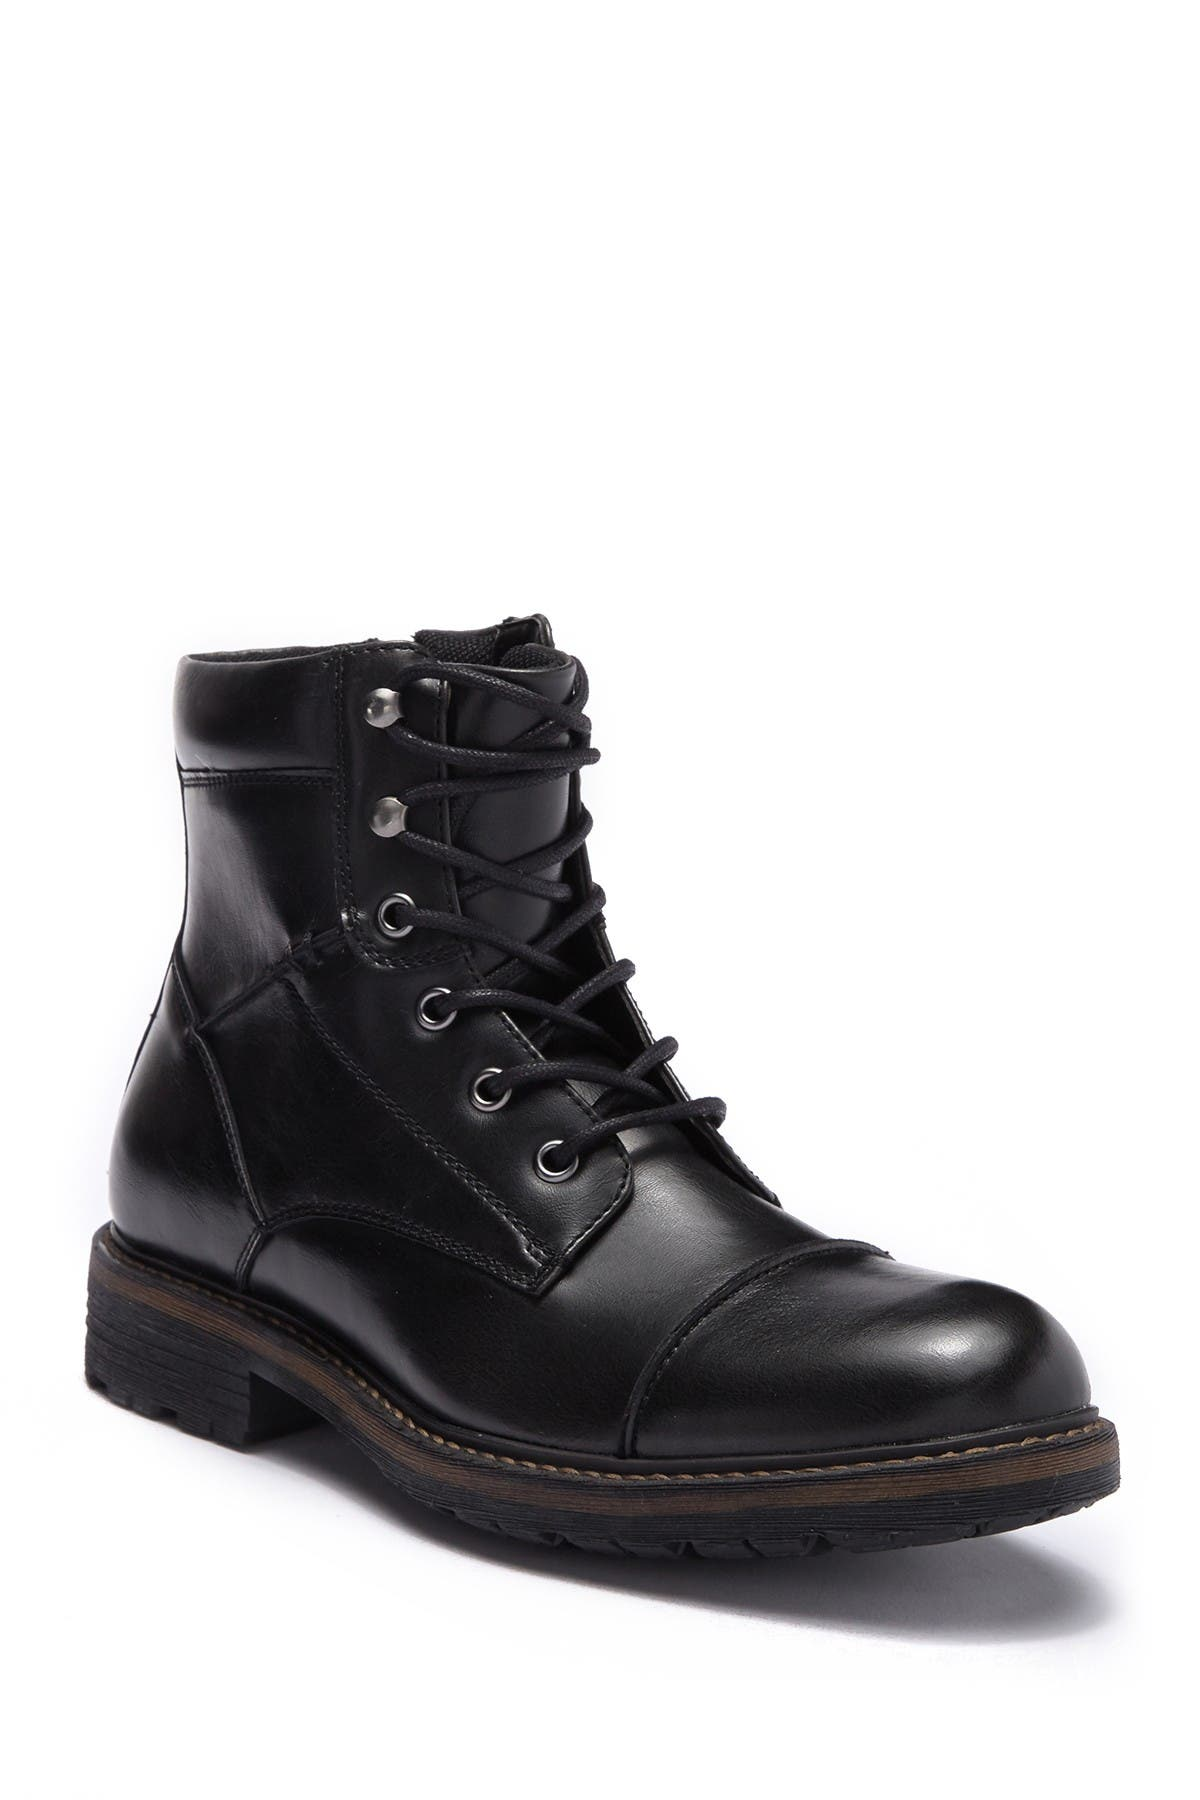 Image of Public Opinion Ranger Combat Boot